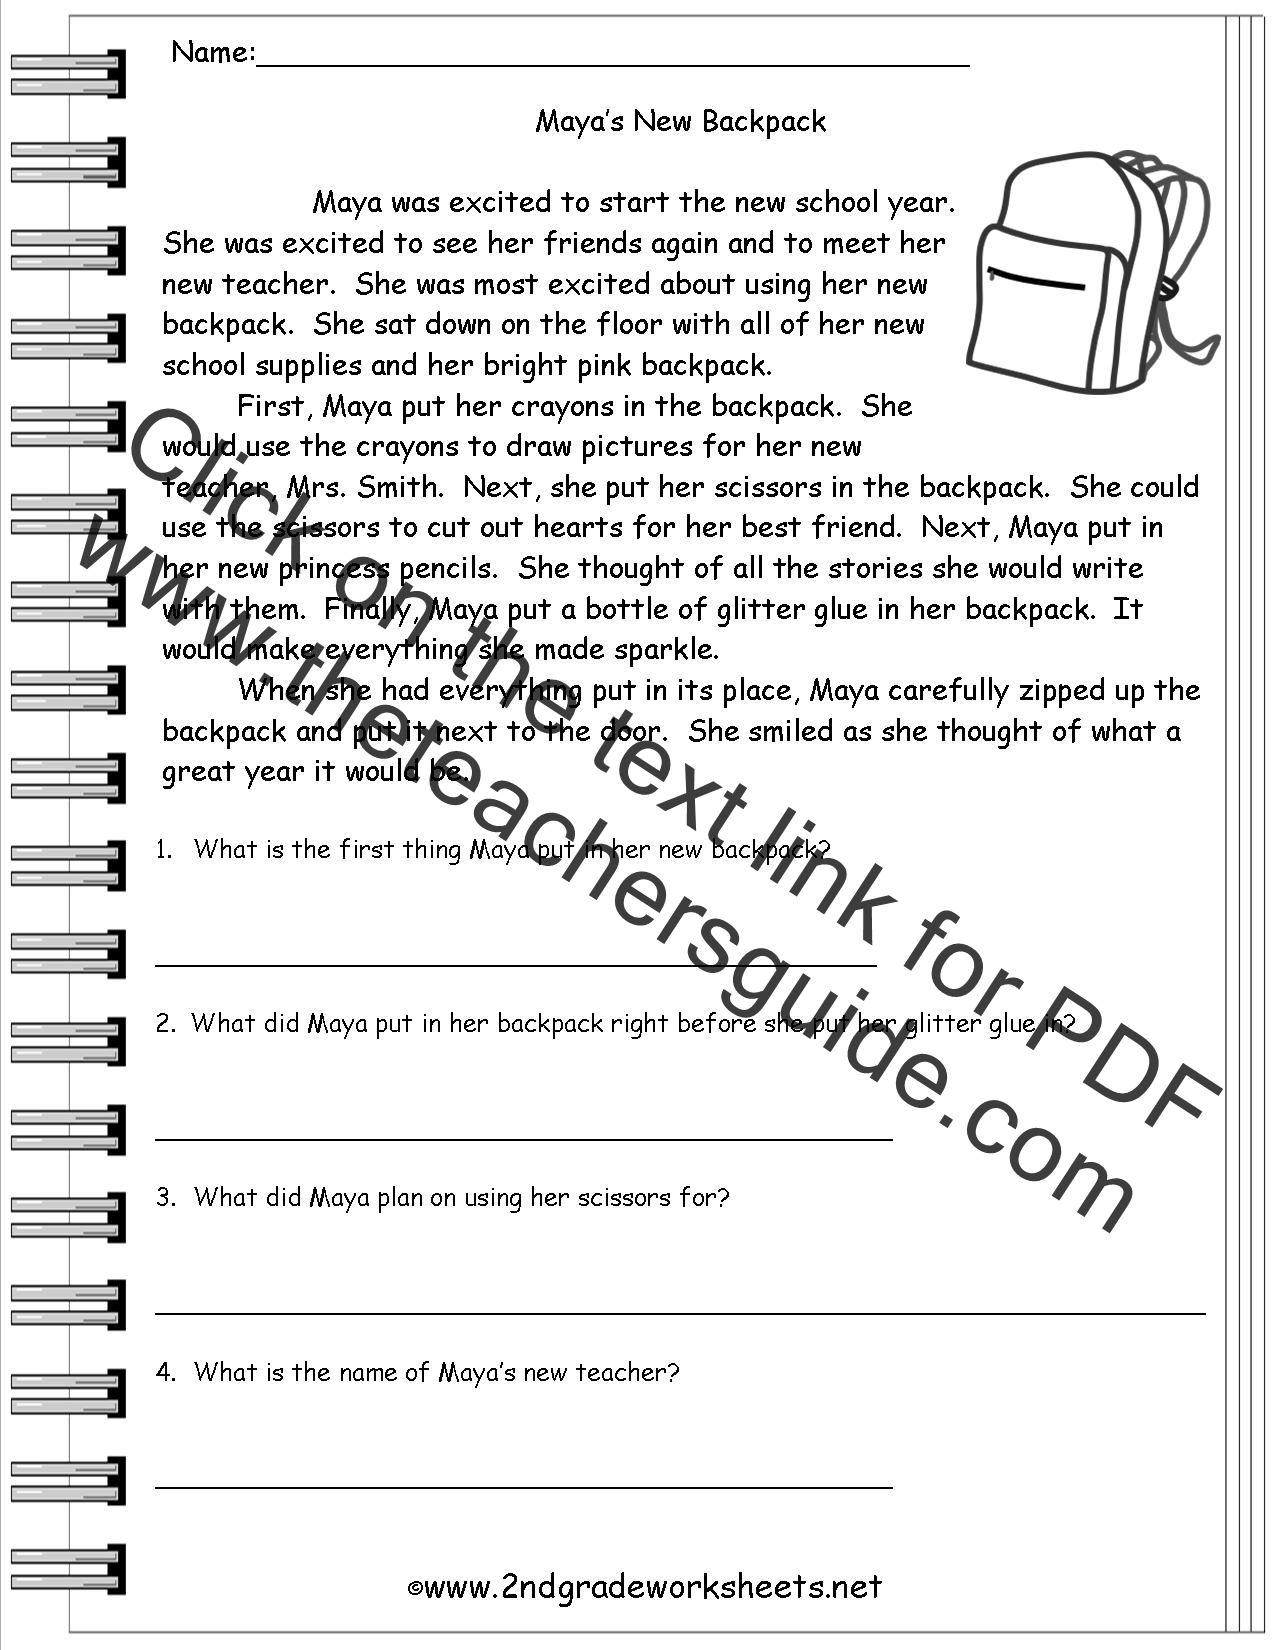 worksheet Second Grade Reading Worksheets reading worksheeets worksheets